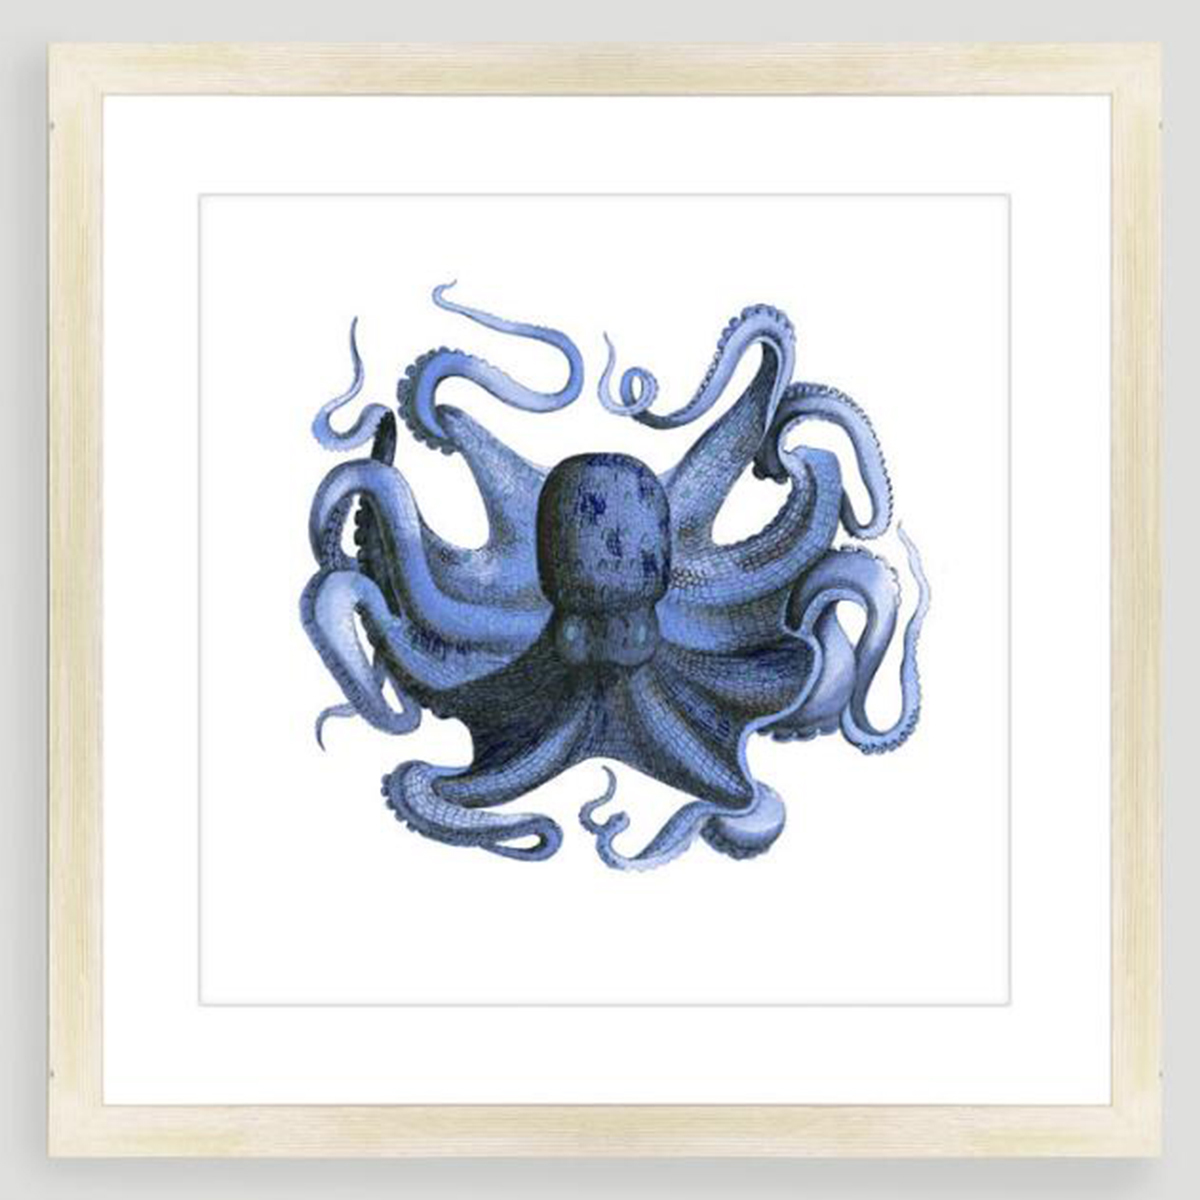 Framed white print with deep blue octopus on it photo